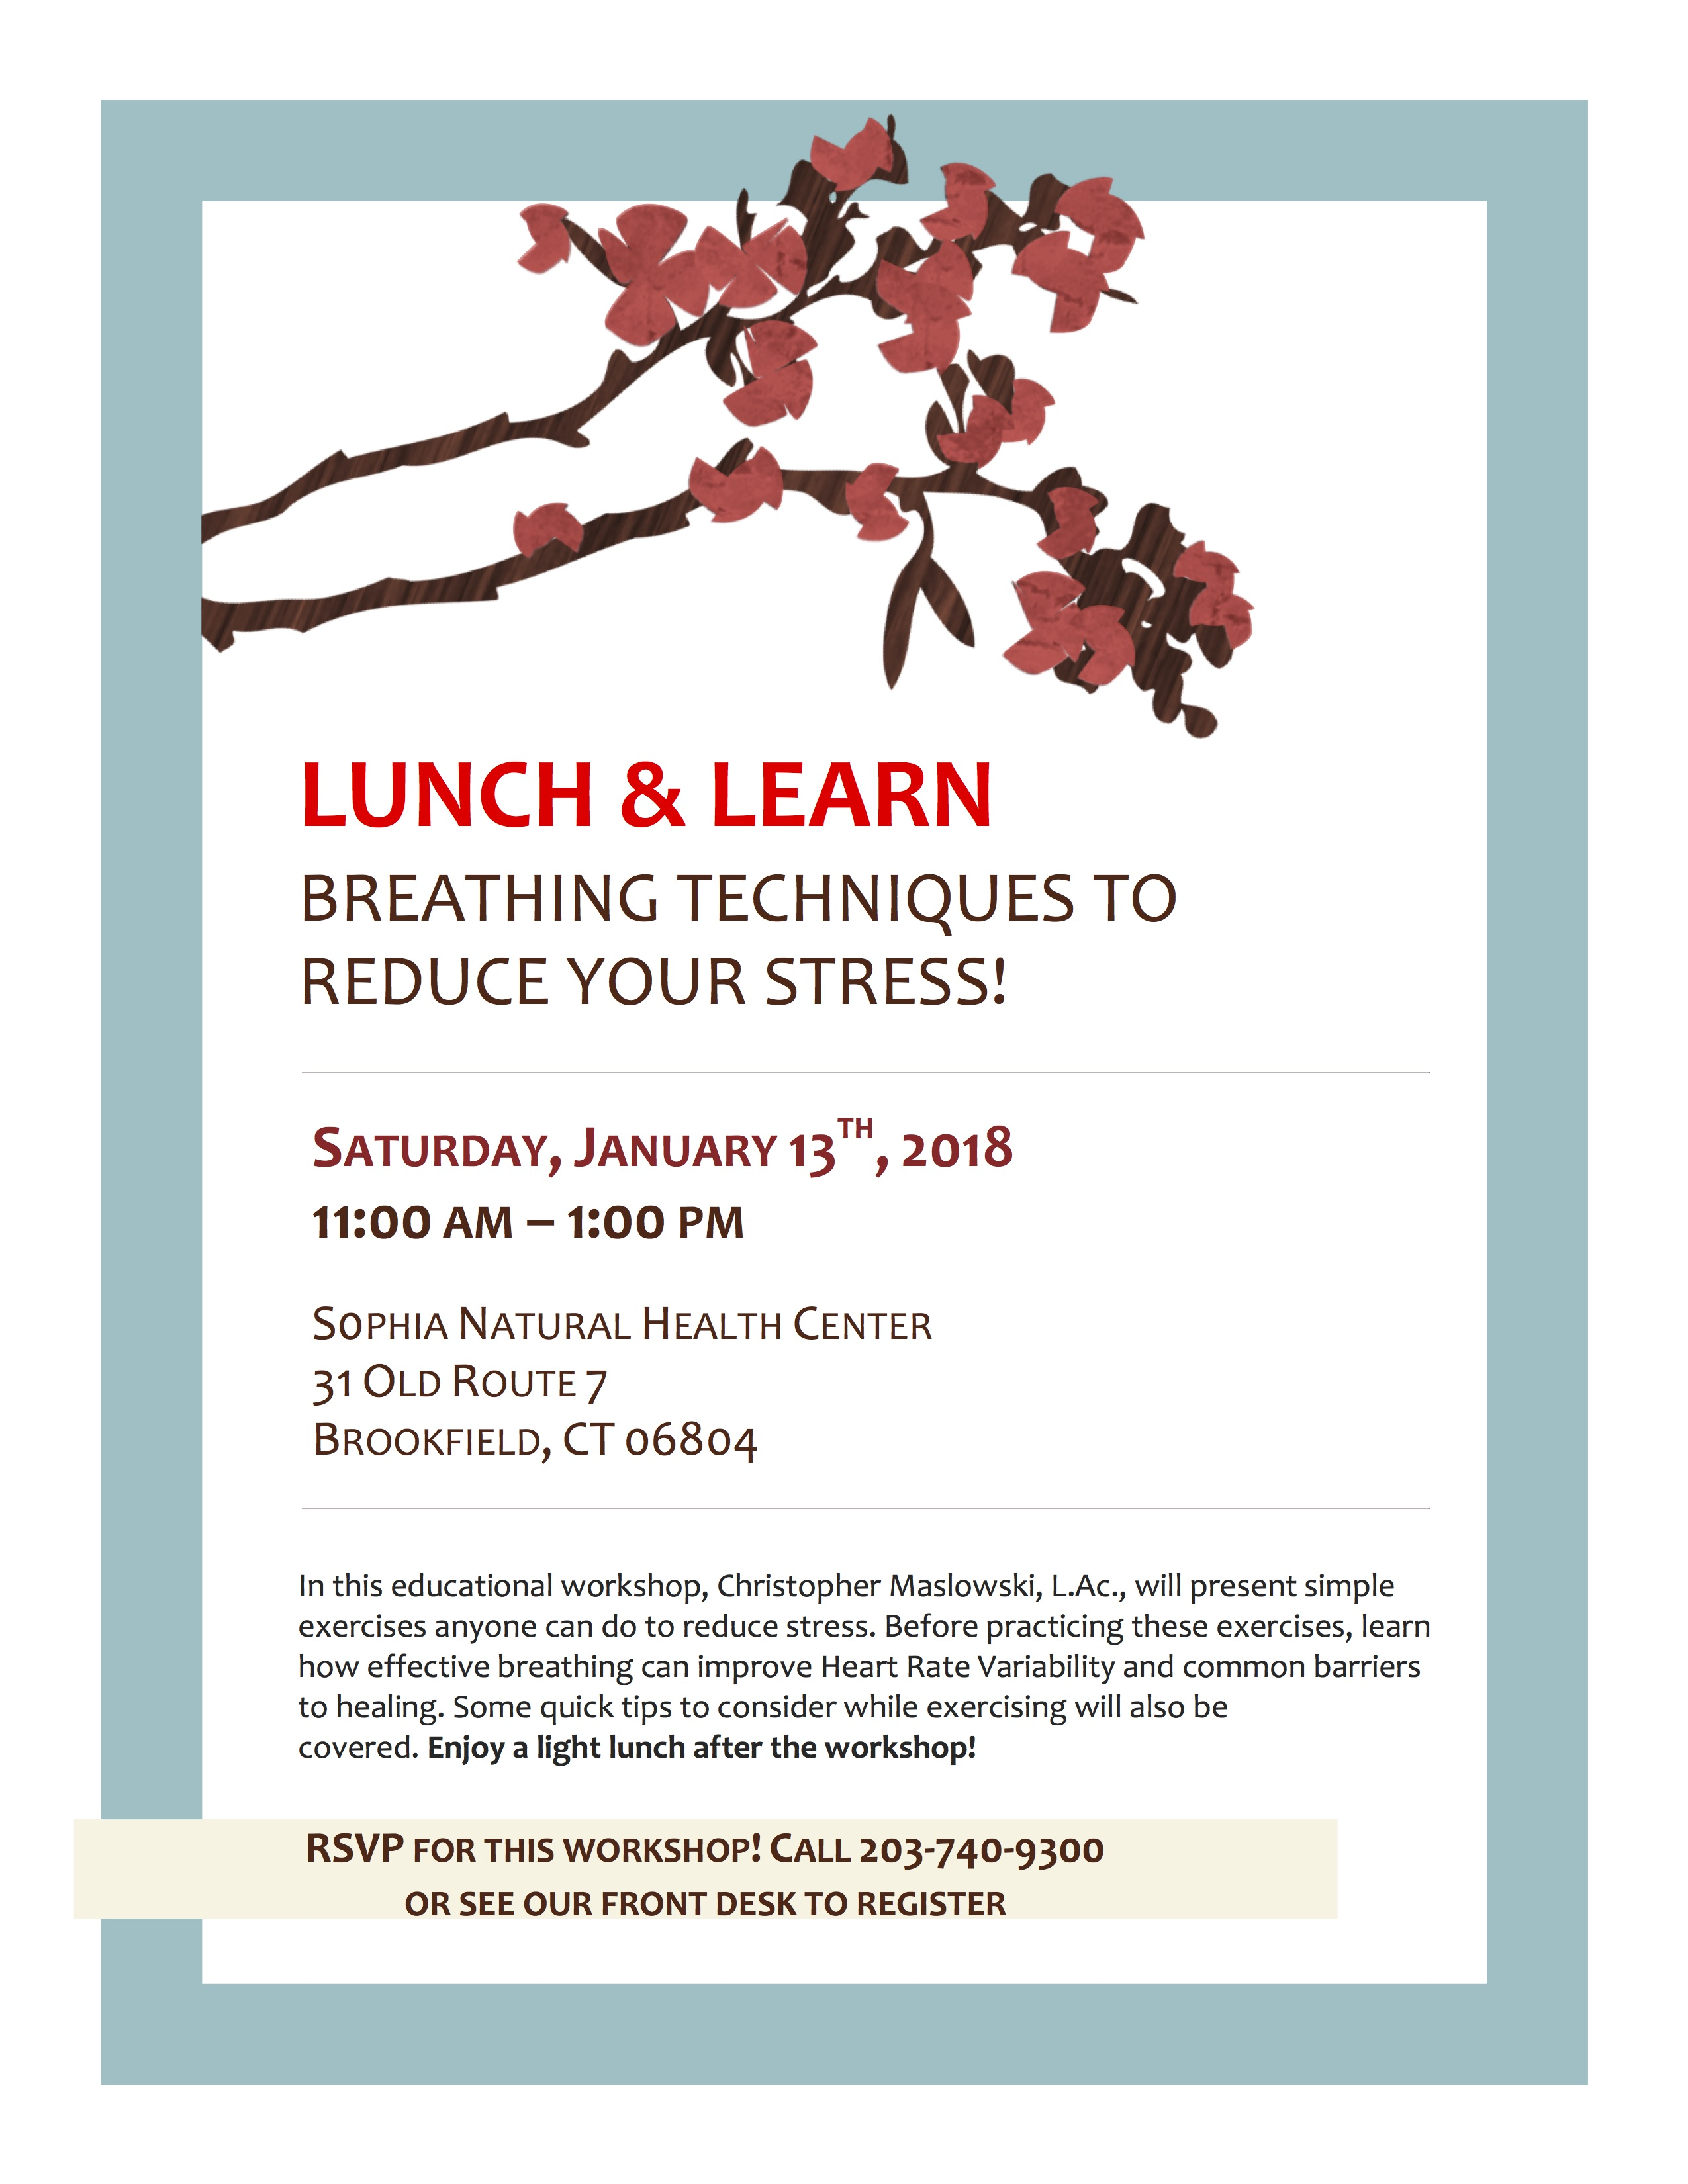 Free Lunch Learn Breathing Techniques to Reduce Stress